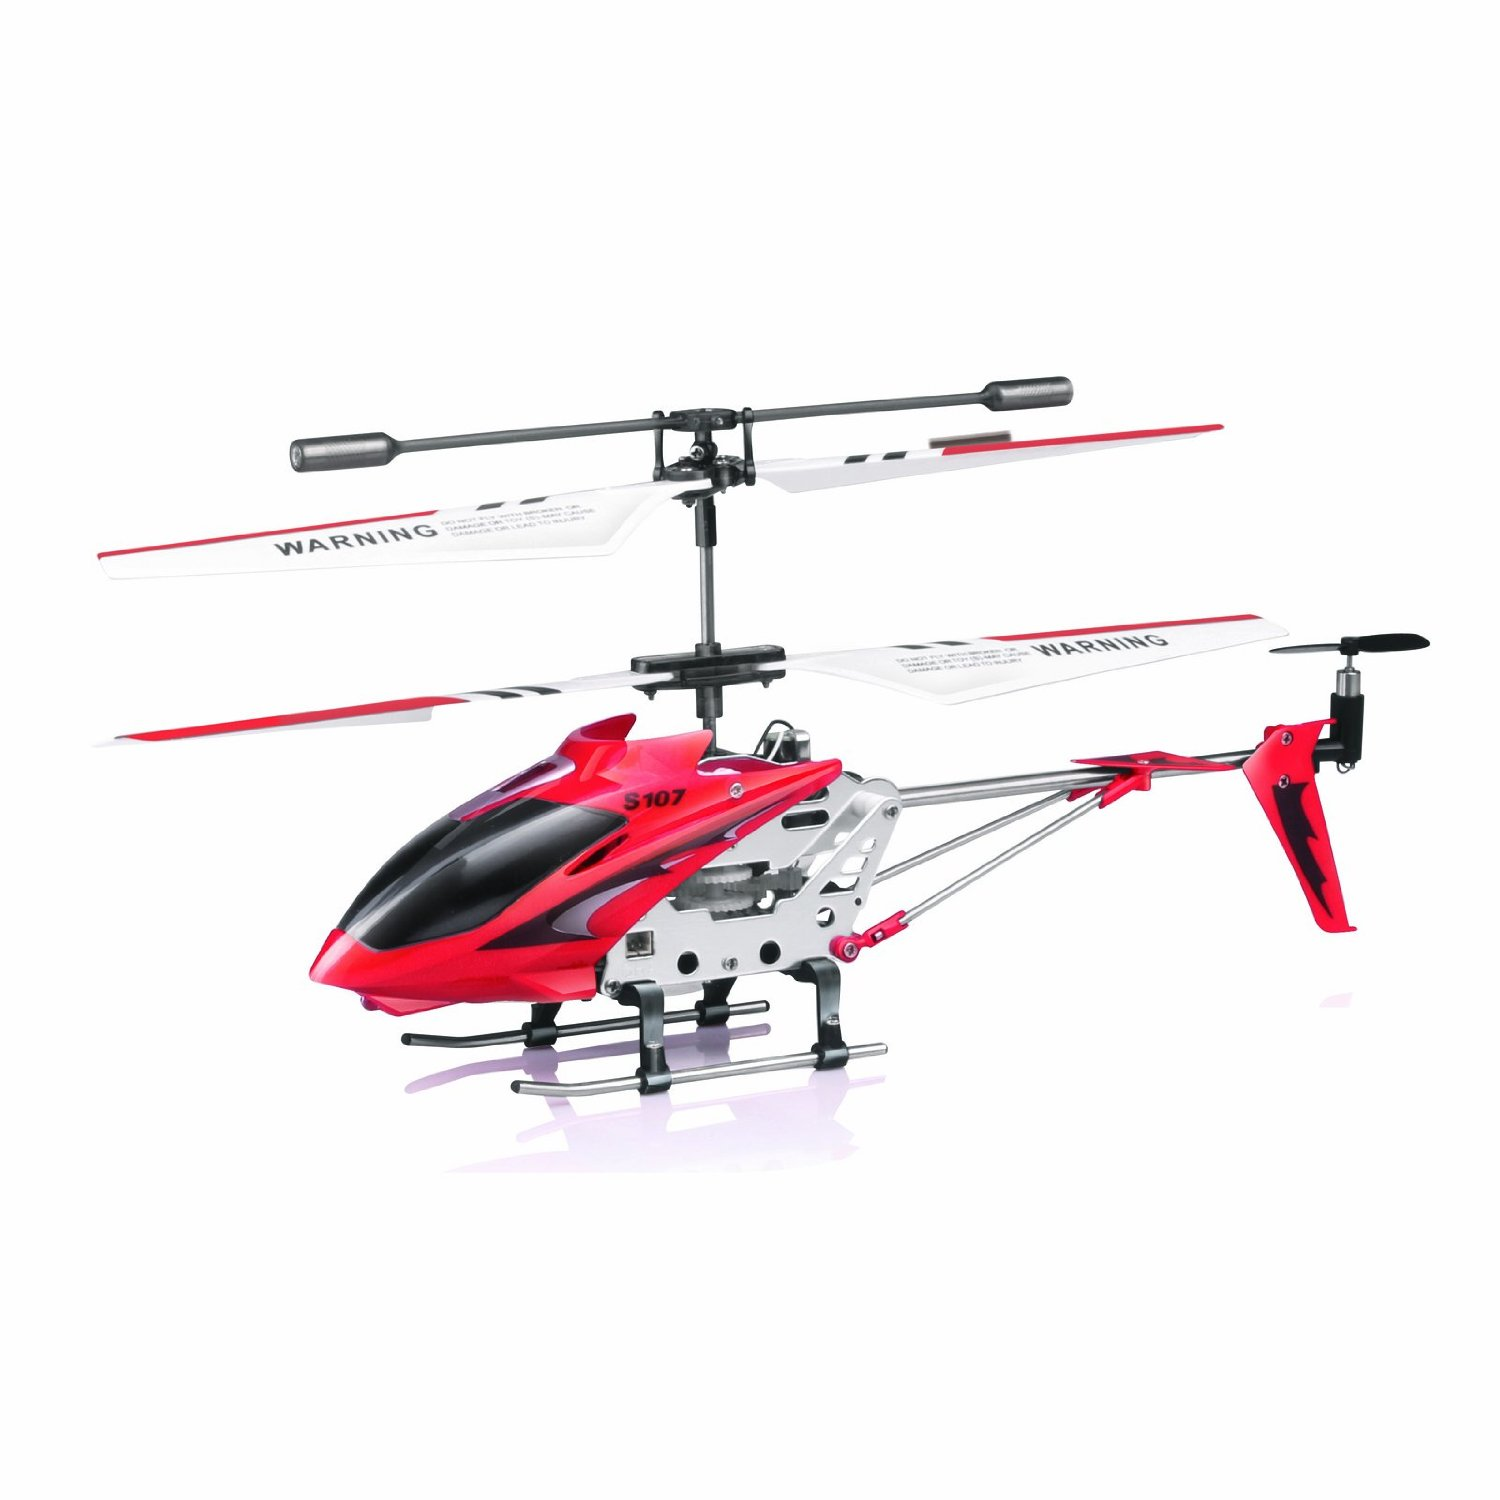 remote control helicopter kids with Syma S107s107g 3 5 Channel Rc Helicopter With Gyro on 12v Electric Ride On Car Mercedes S63 Amg Official Licensed Model In Pink With Parental Control 2636 P together with Toy Remote Control Cars 2015 furthermore Raptor as well Rc Radio Control 2015 likewise Artist Bart Jansen Is Building A Badger Submarine Cow Copter Bovine Personnel Carrier 2016 5.